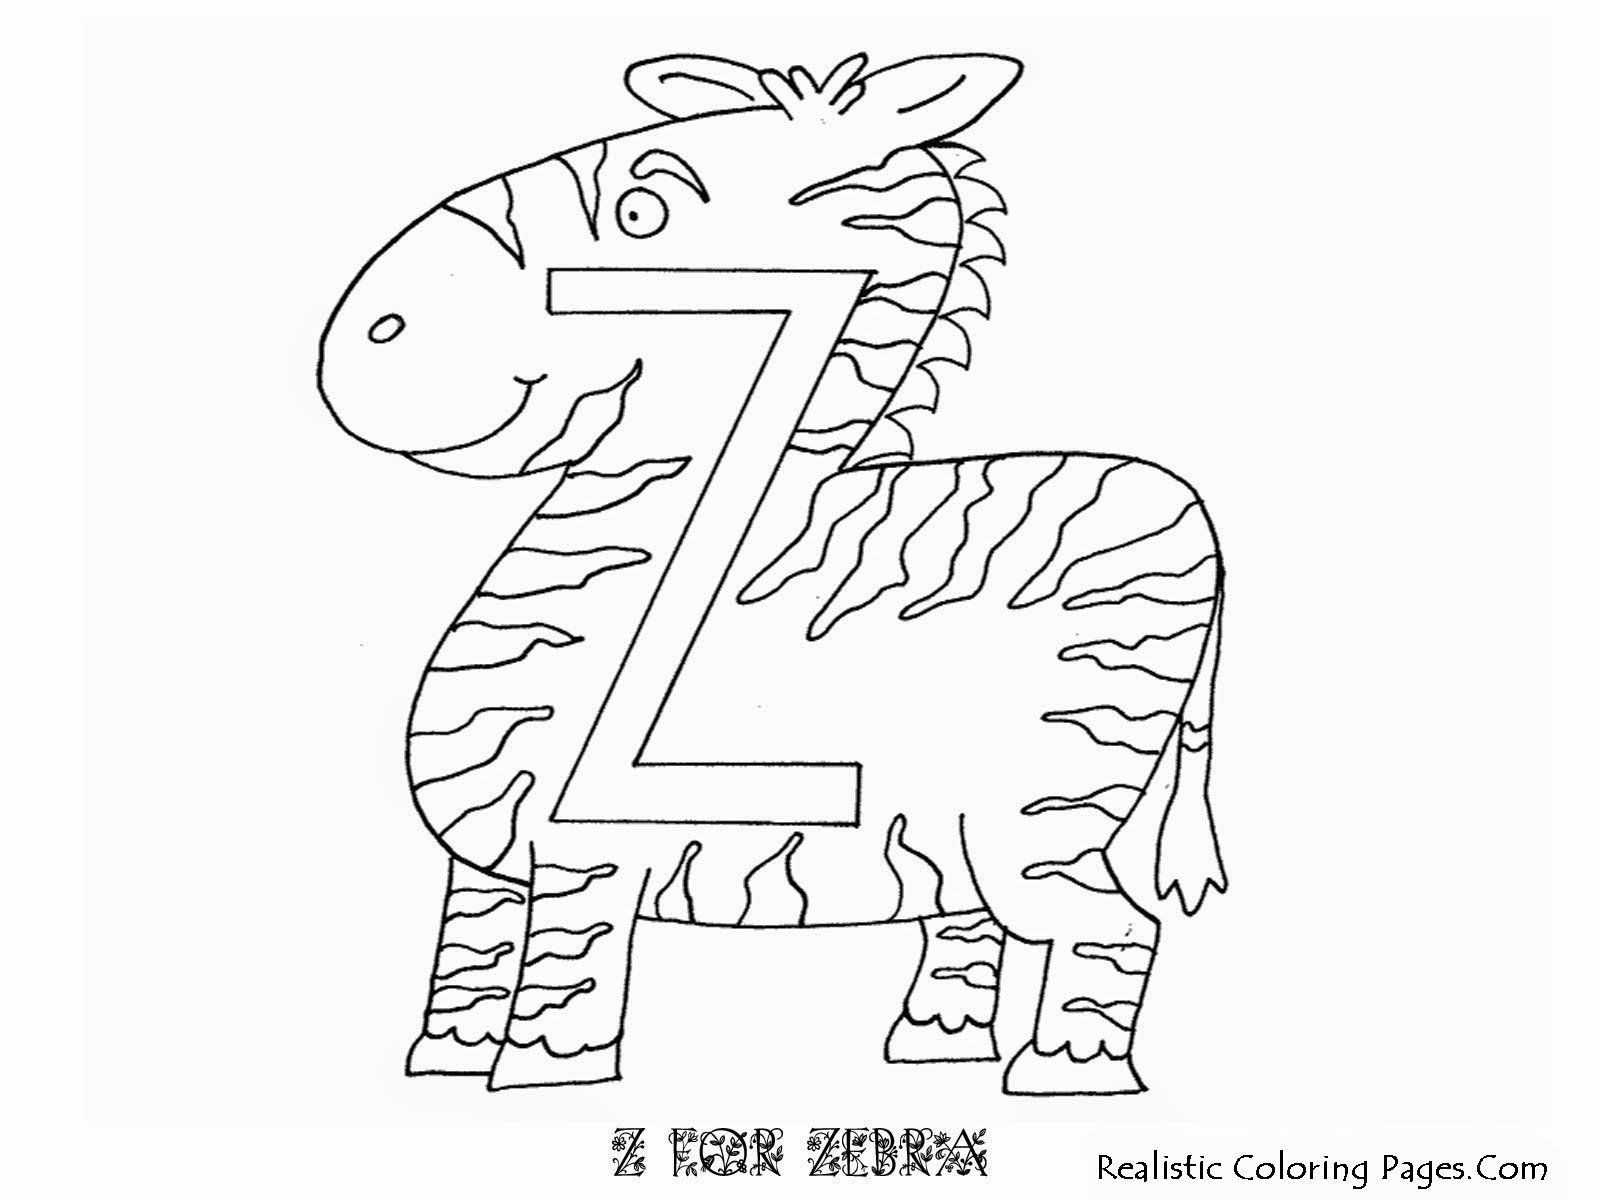 Letter A Coloring Pages Best Of The Letter People Coloring Pages In 2020 Letter A Coloring Pages Zebra Coloring Pages People Coloring Pages